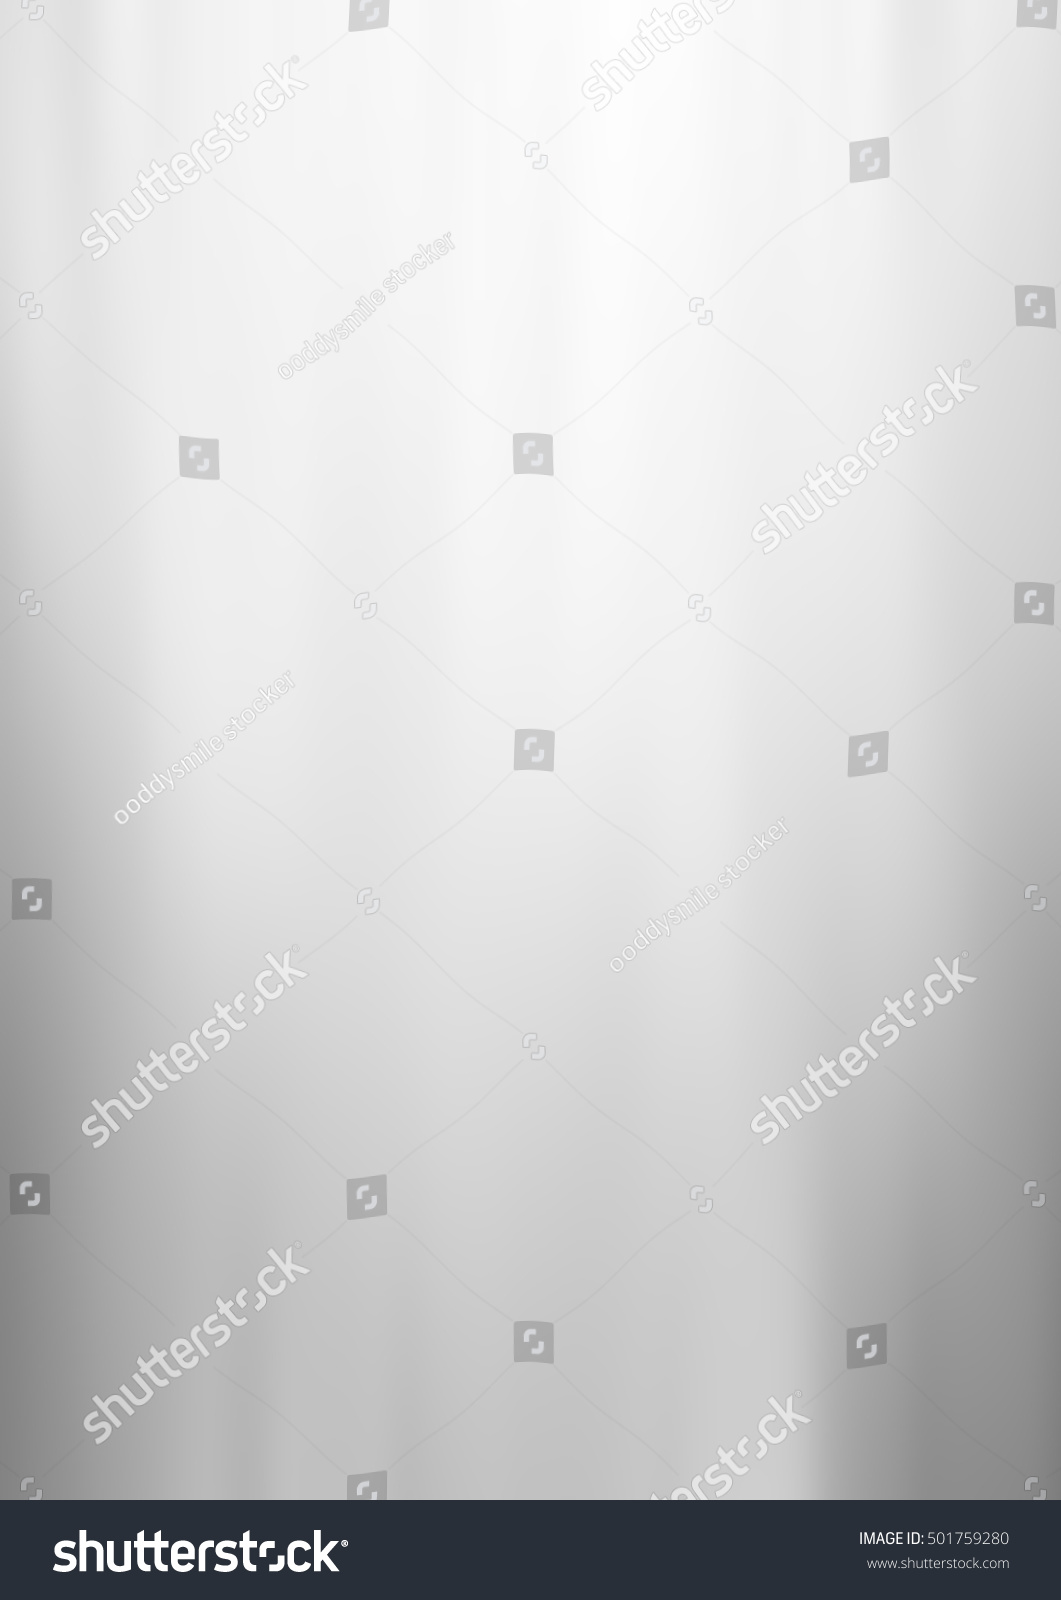 Light Gray Gradient Background Grey Radial Stock Image